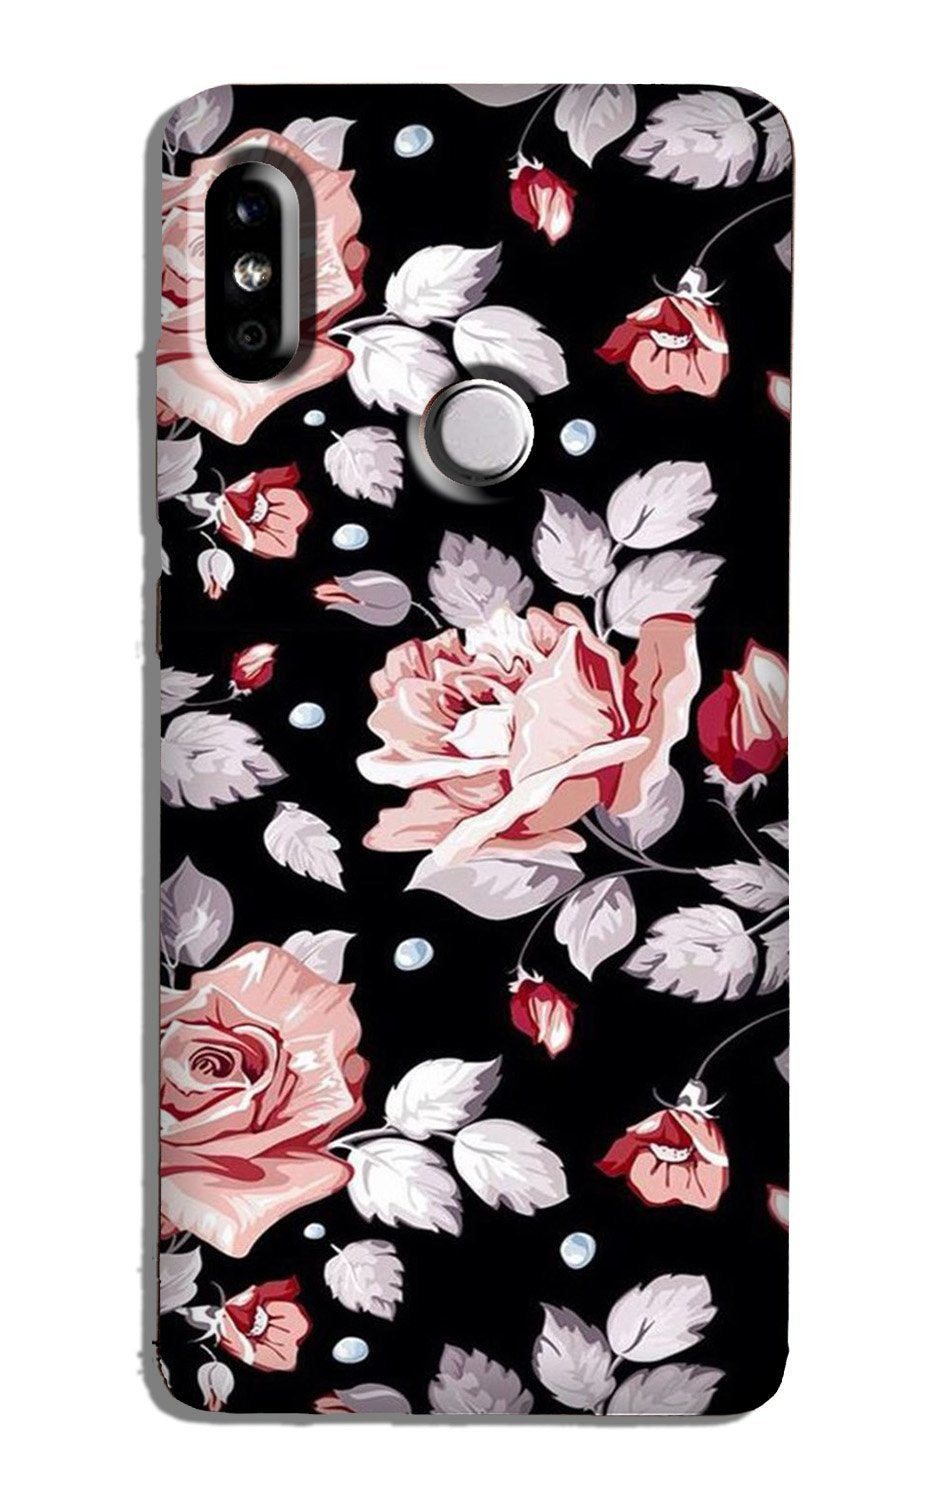 Pink rose Case for Redmi Note 5 Pro